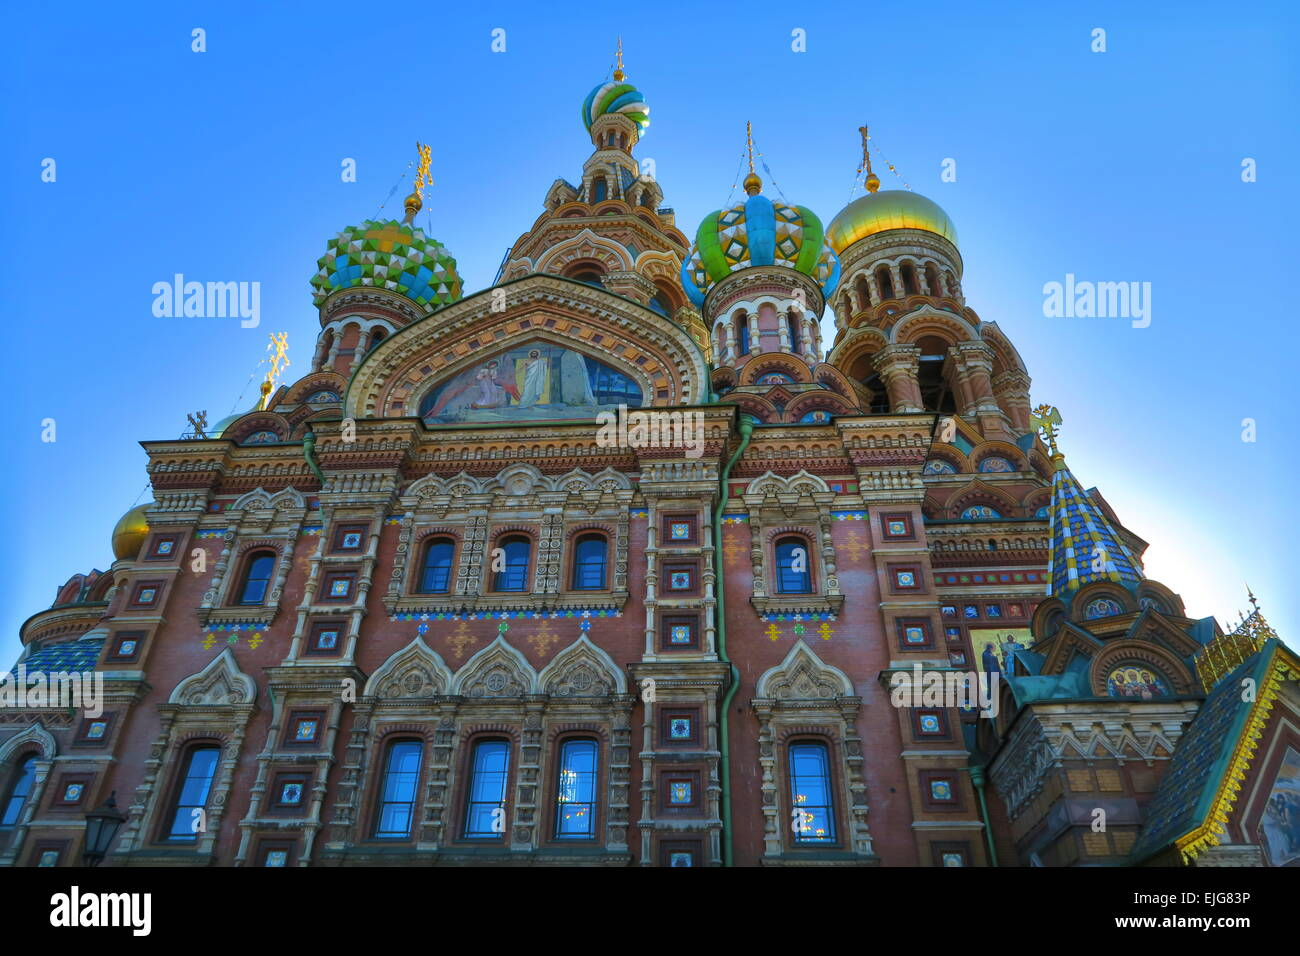 Church of the spilled blood, Saint Petersburg, Russia - Stock Image